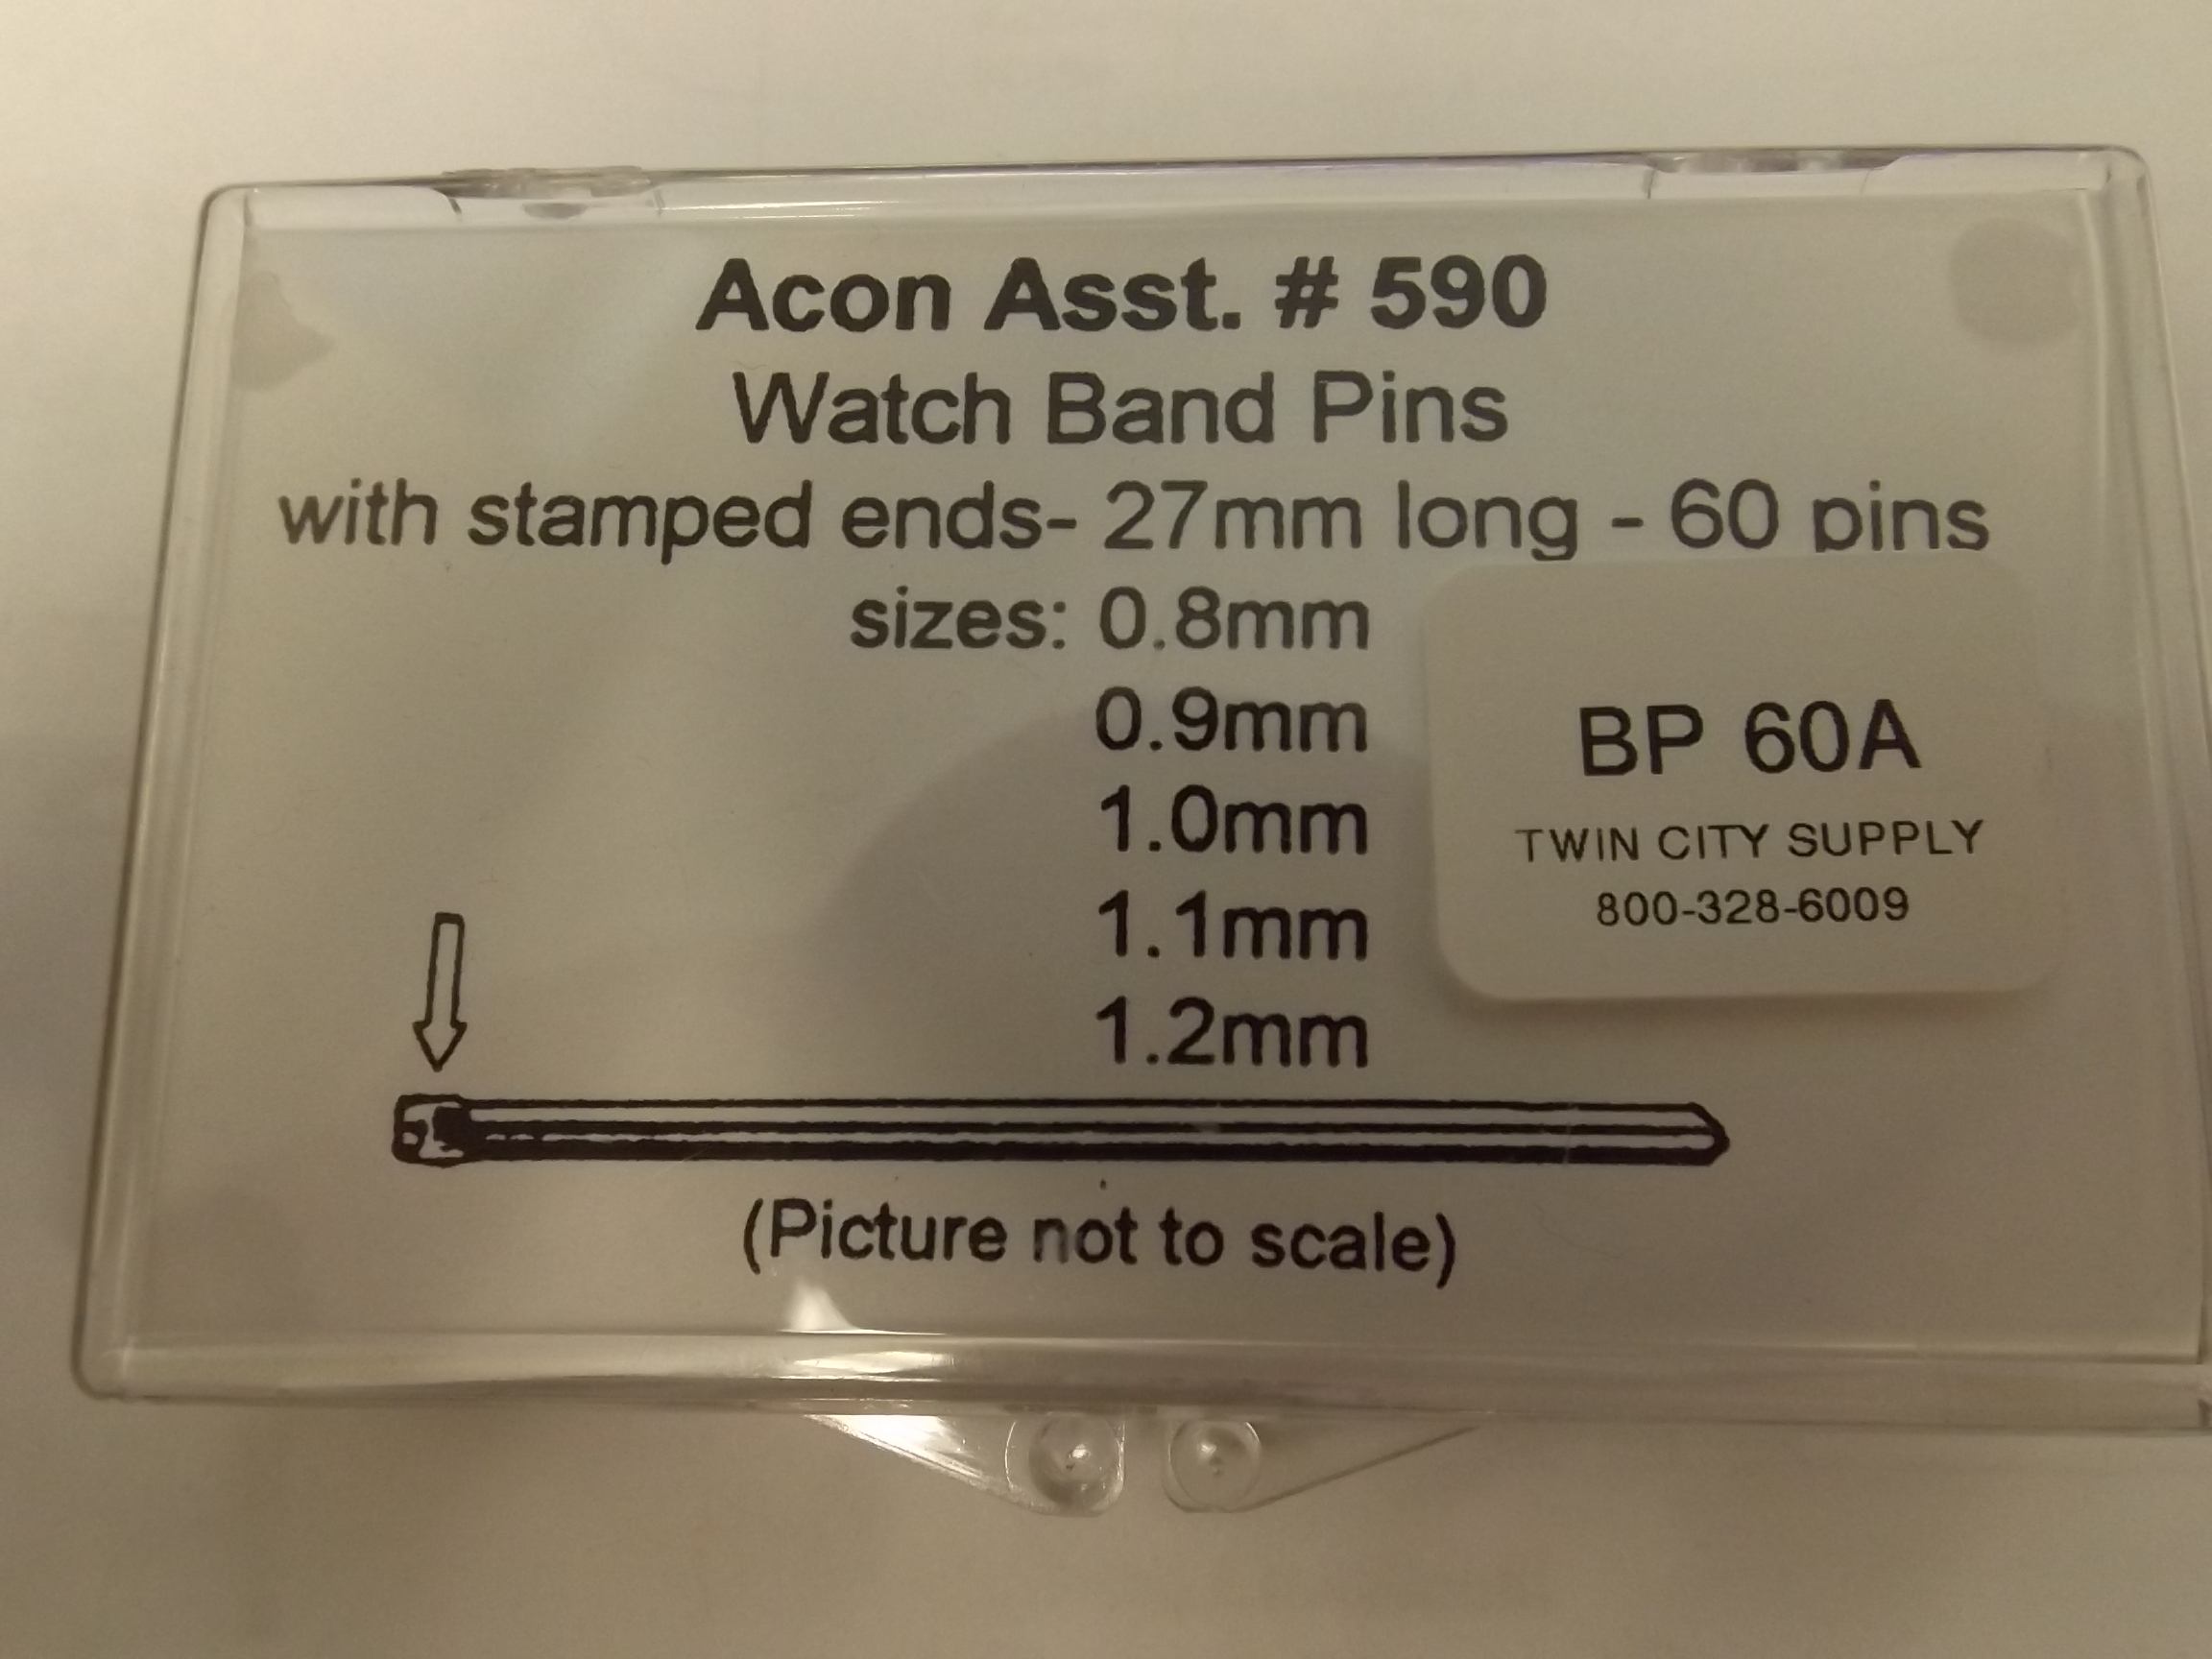 BP60A Bracelet Pin Assortment with Stamped ends- Stainless Steel- 60 pieces- Newall or Acon